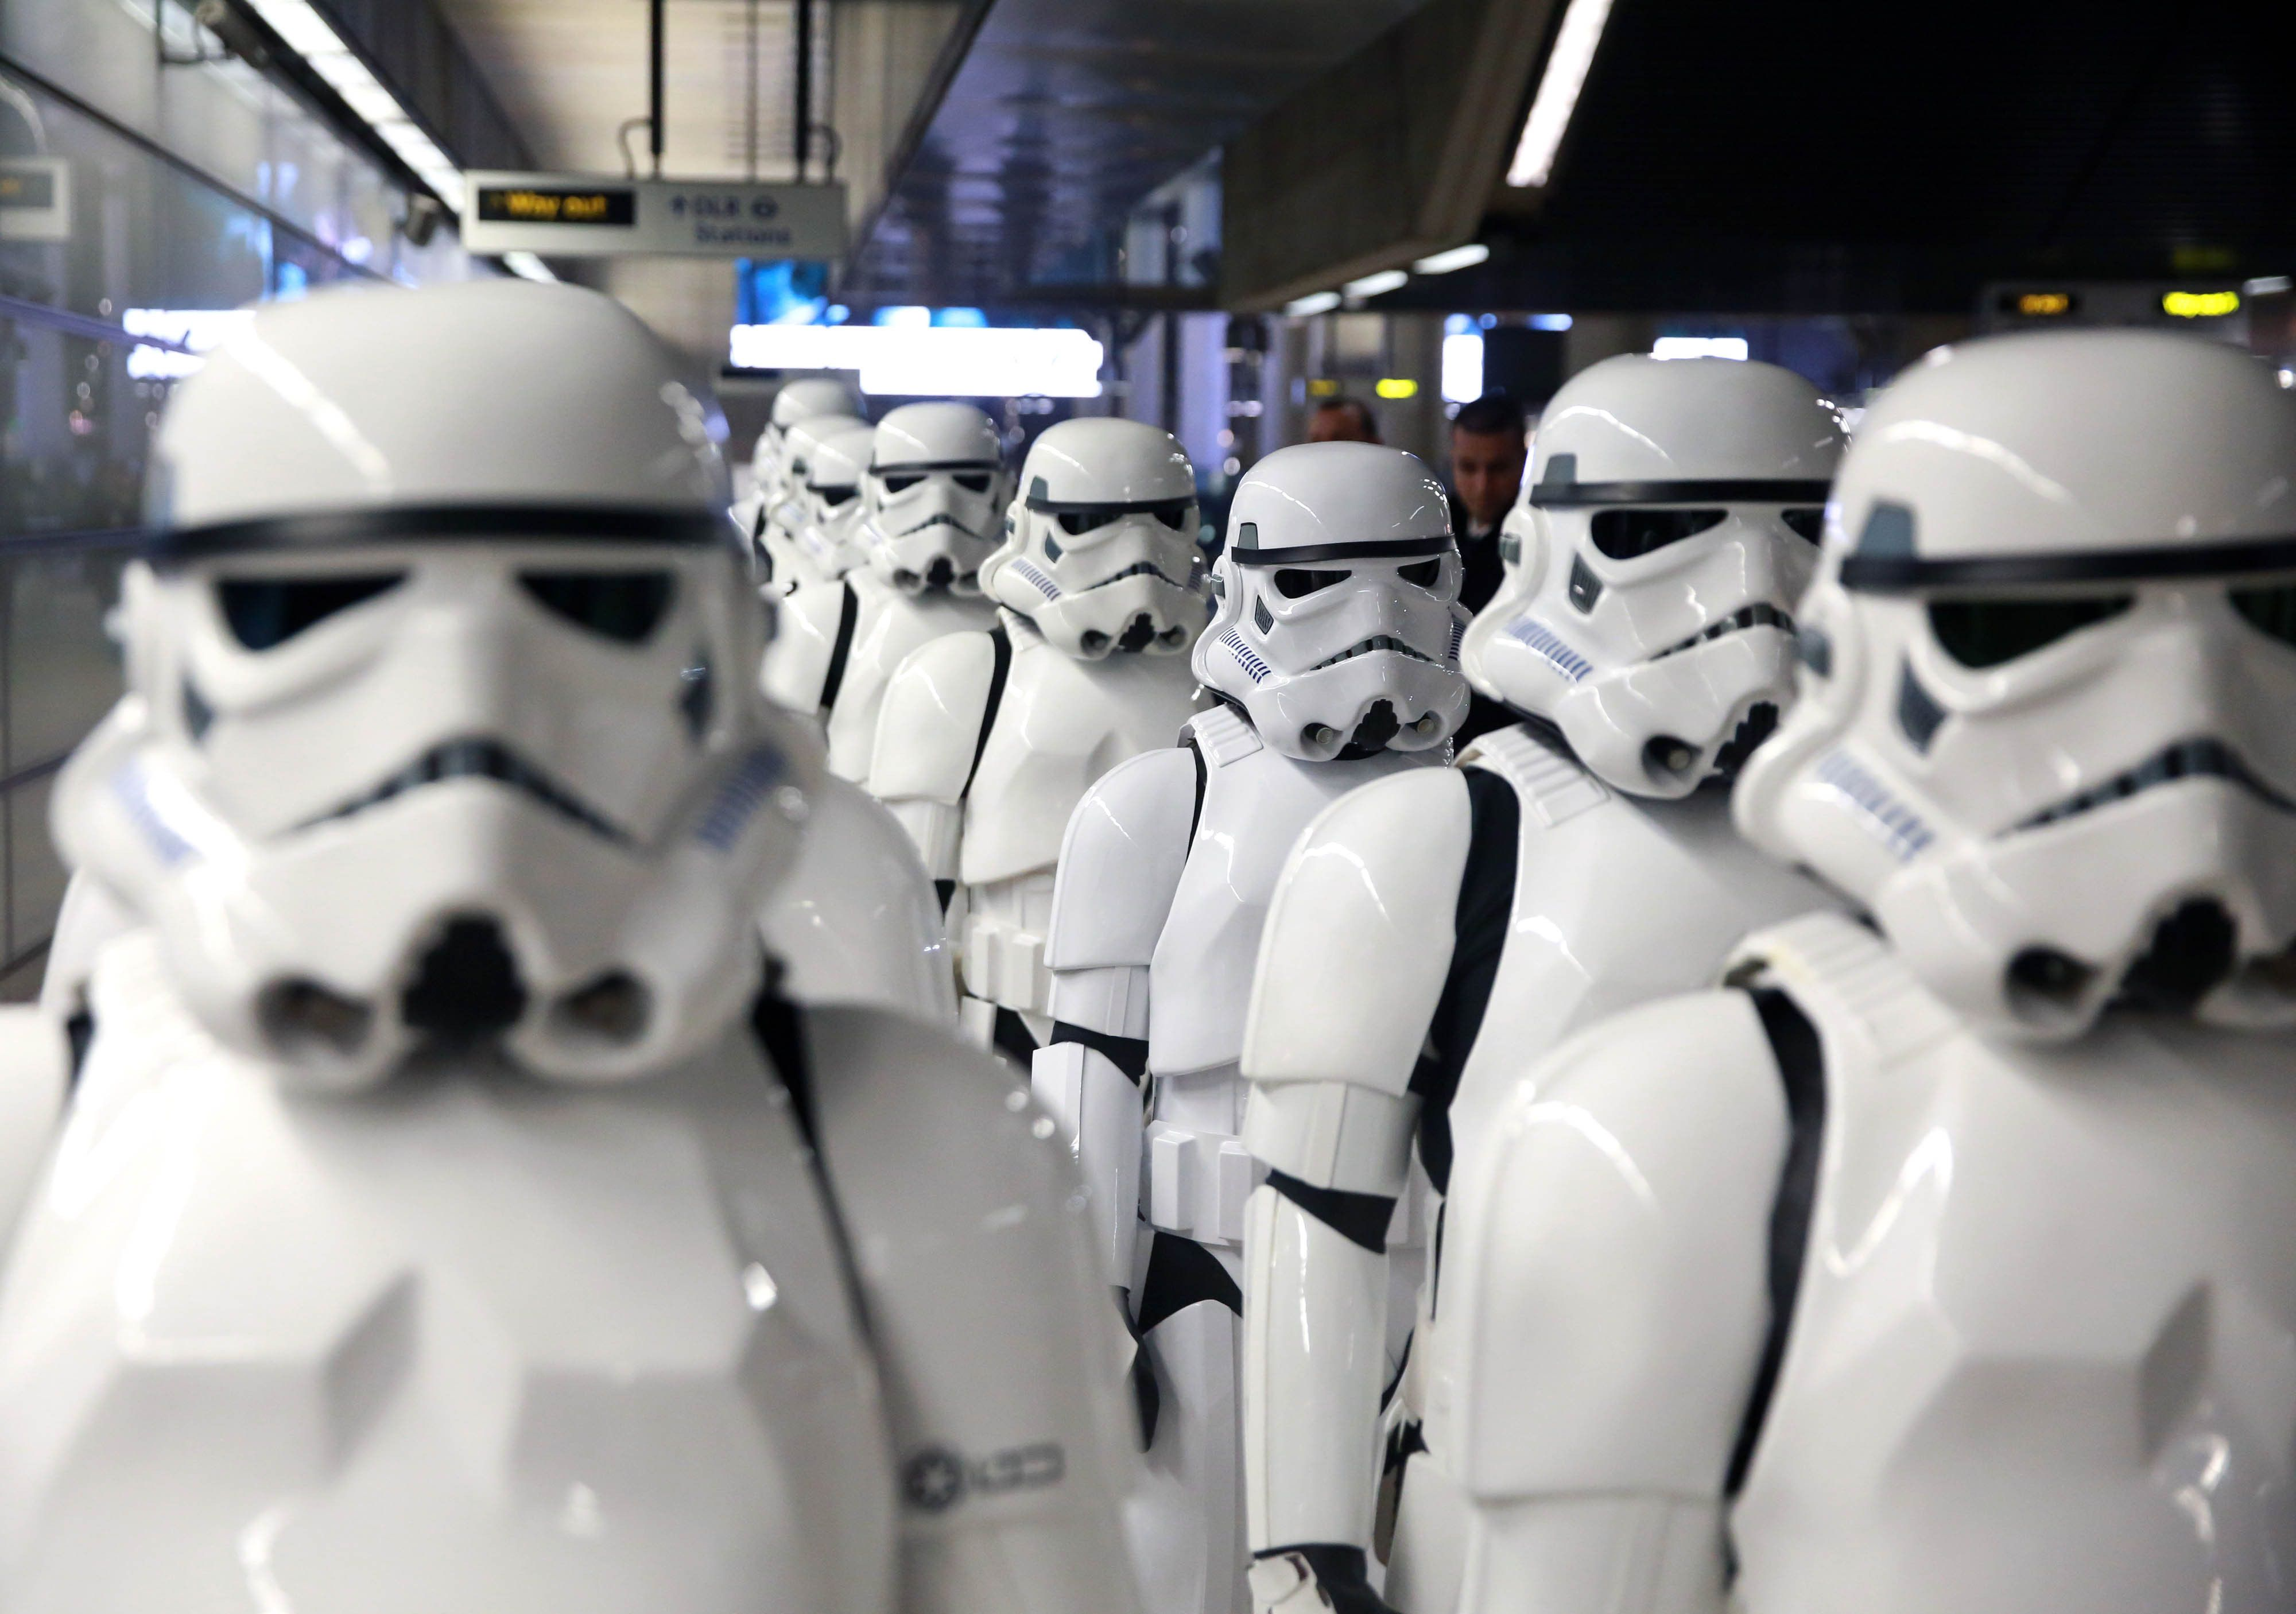 Which Unlikely Boyband Star Has Bagged A Role In The New 'Star Wars'